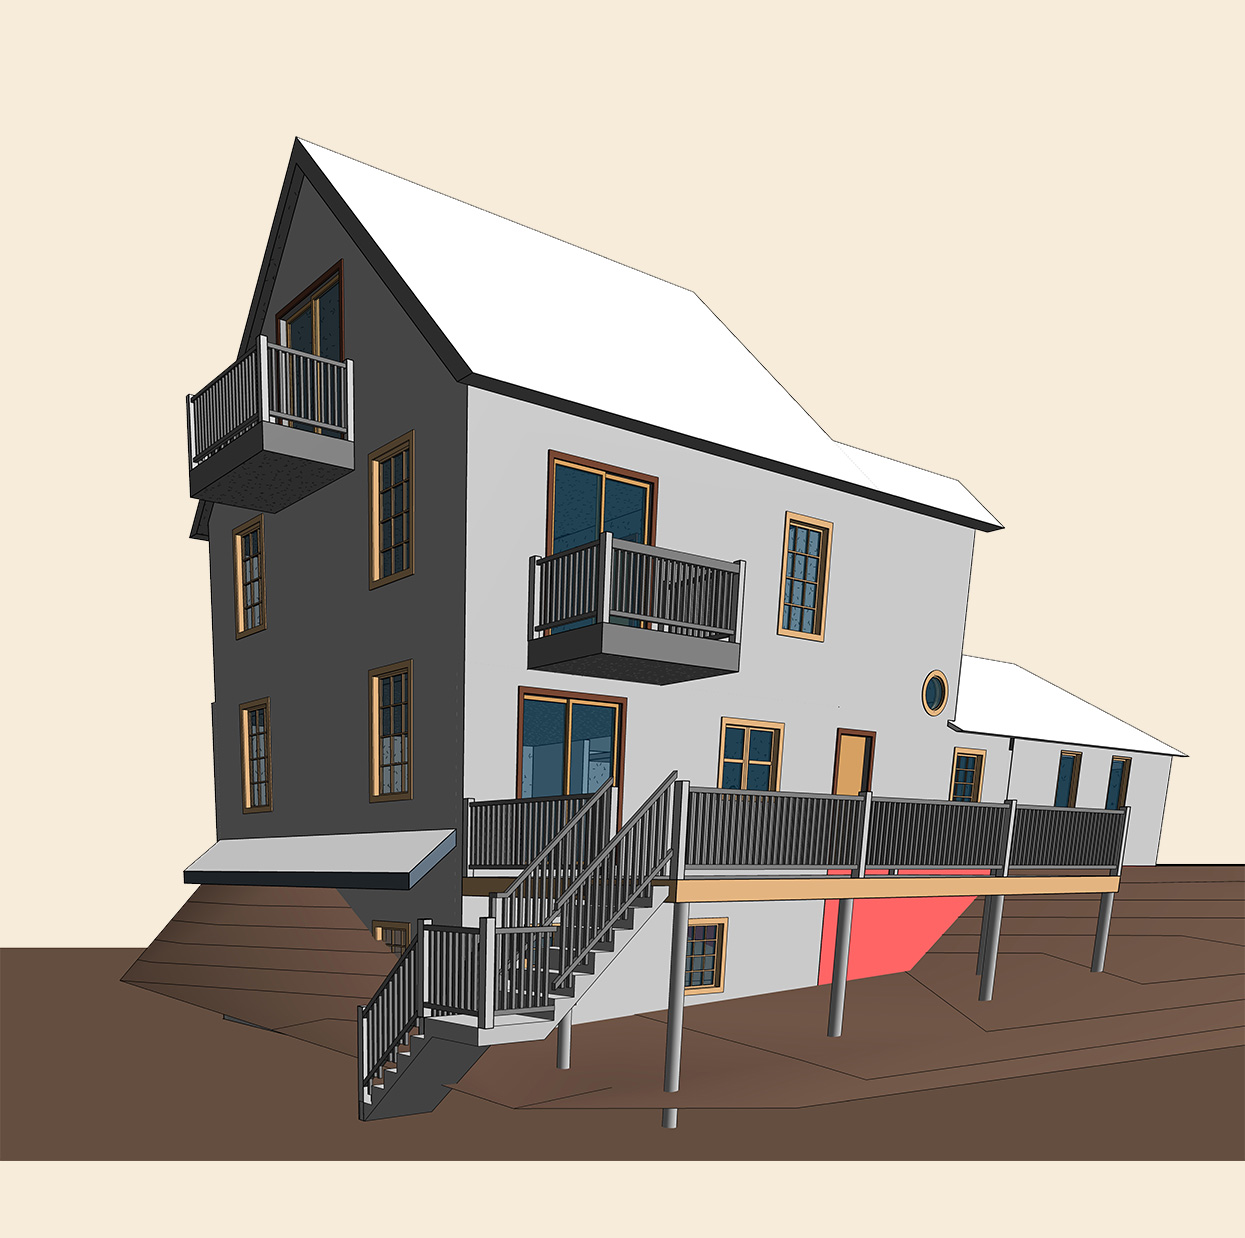 3D-Architectural-Model-of-2-Story-House_Residential-Project-by-United-BIM